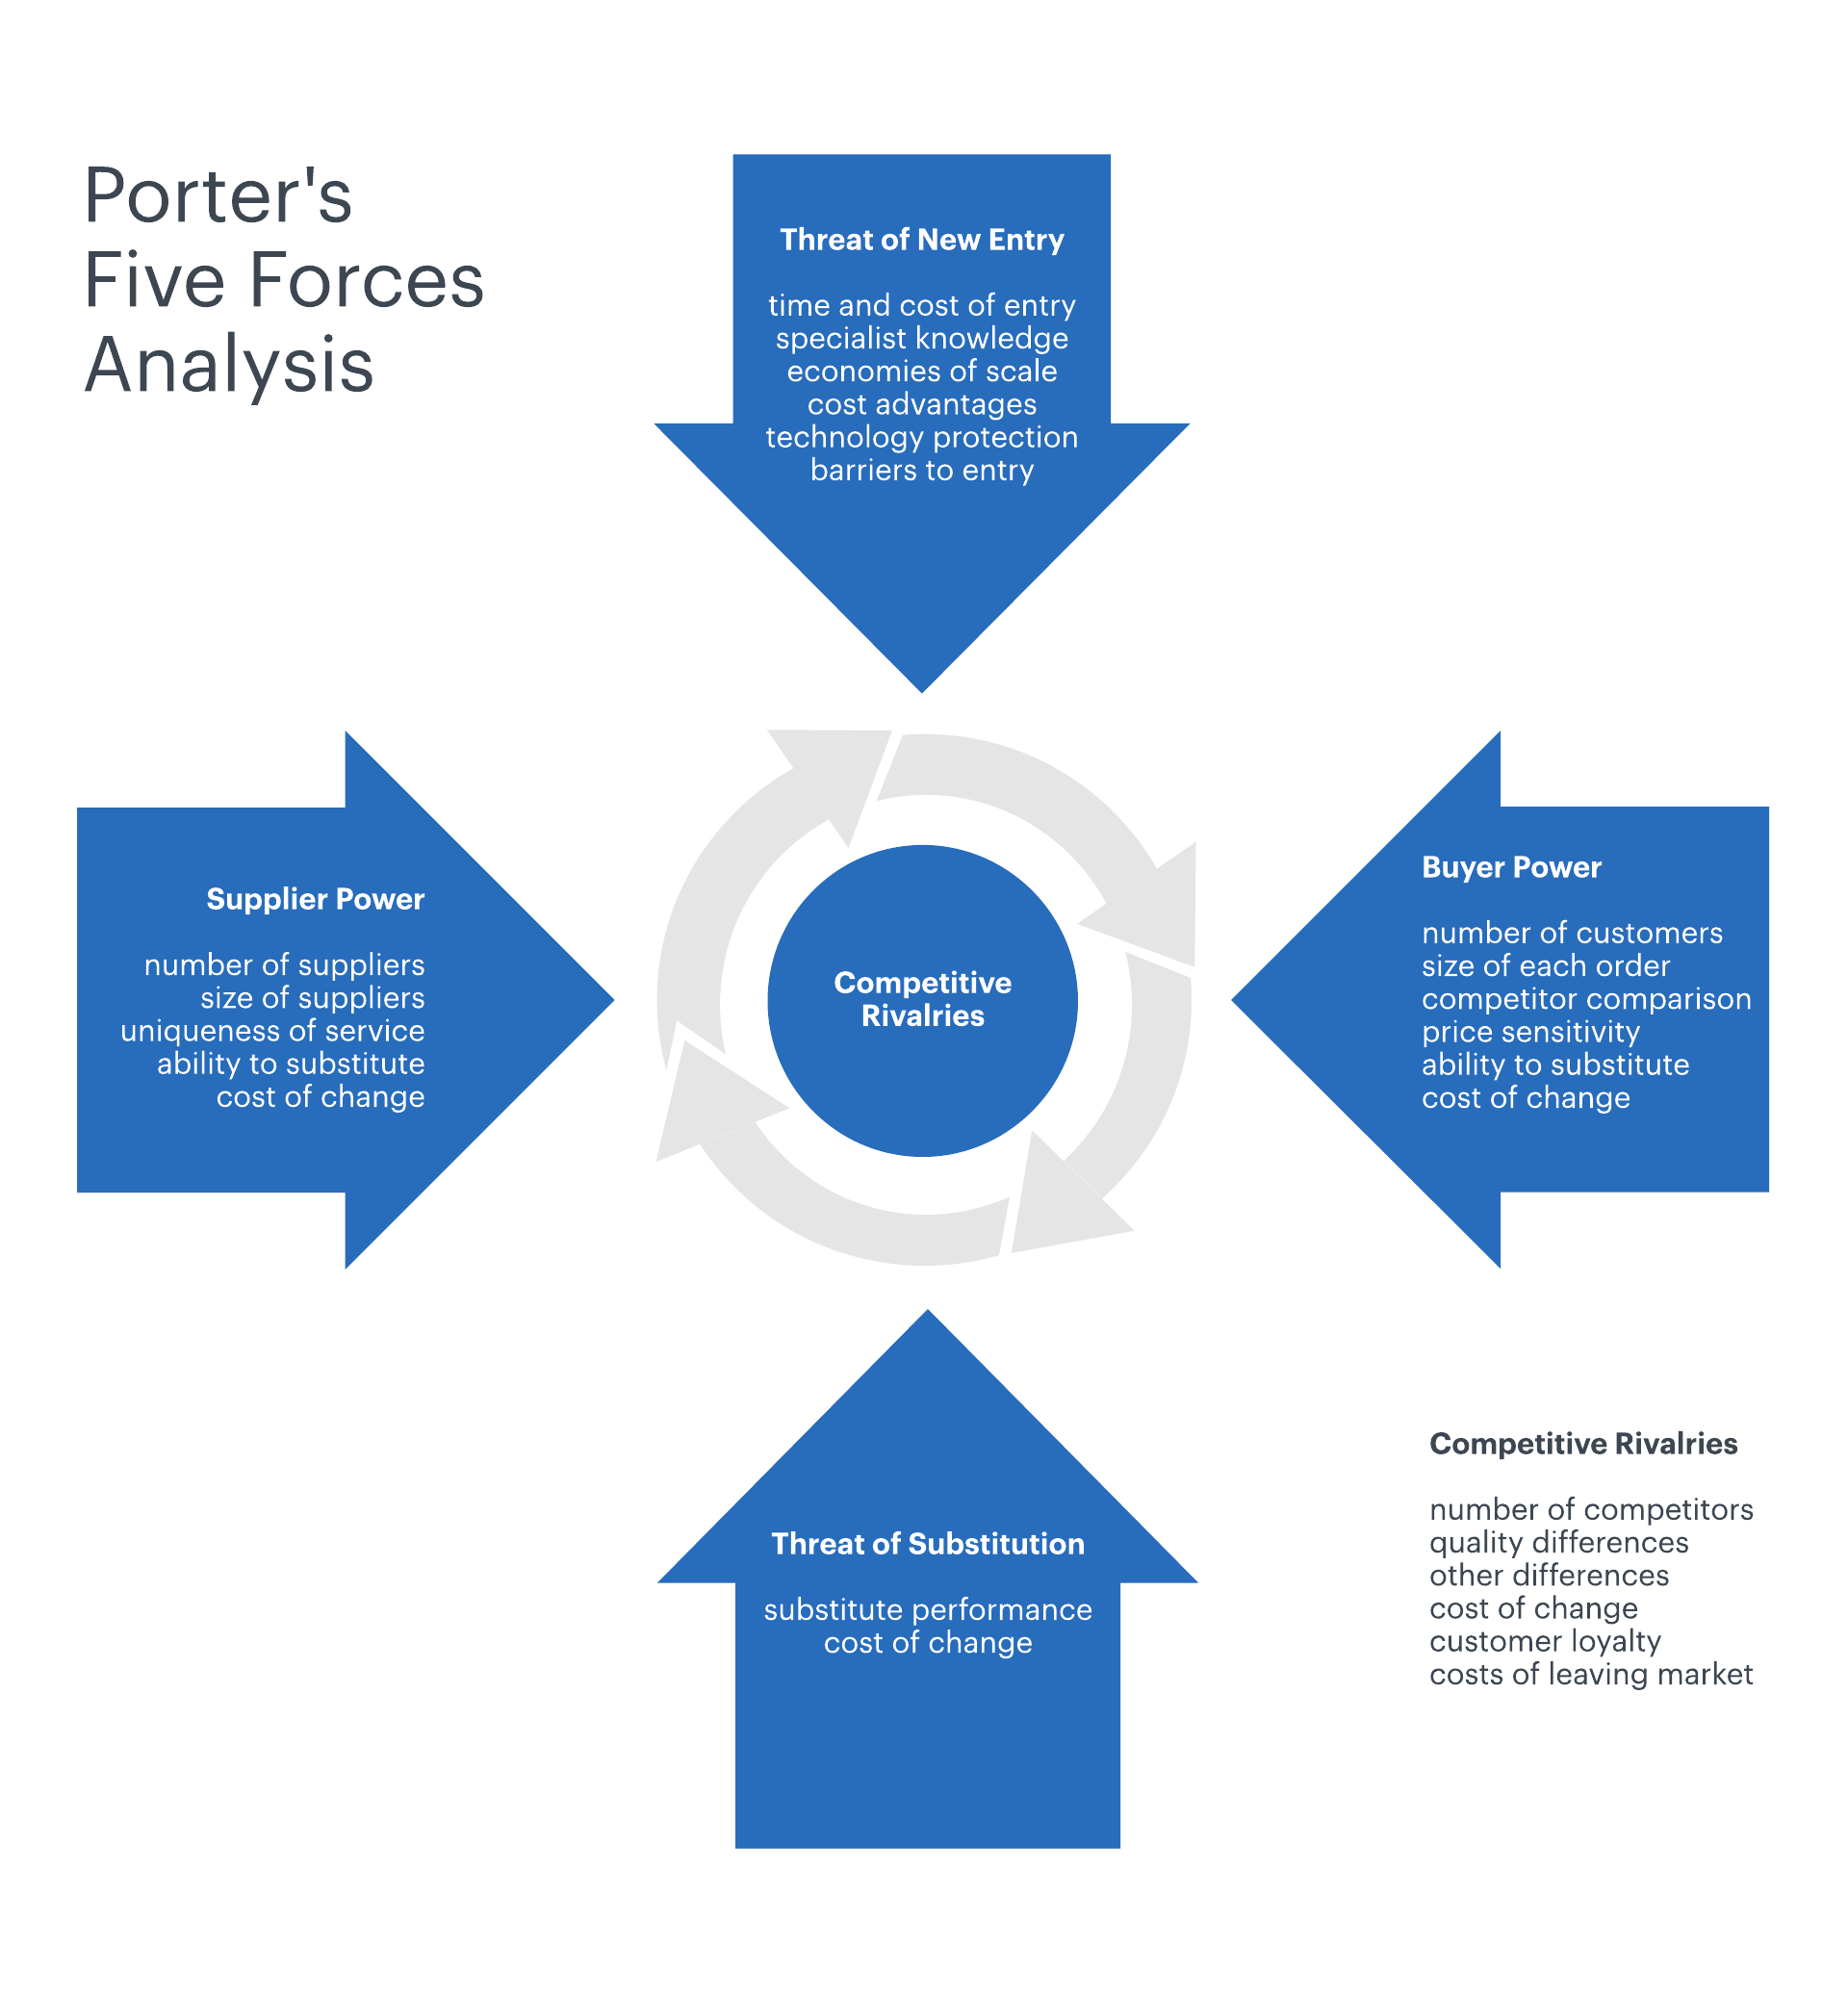 This chart identifies Porter's 5 Forces for assessing the profitability of a value chain: threat of substitutes, threat of new entrants, bargaining power of buyers, bargaining power of suppliers, and rivalry among existing competitors.